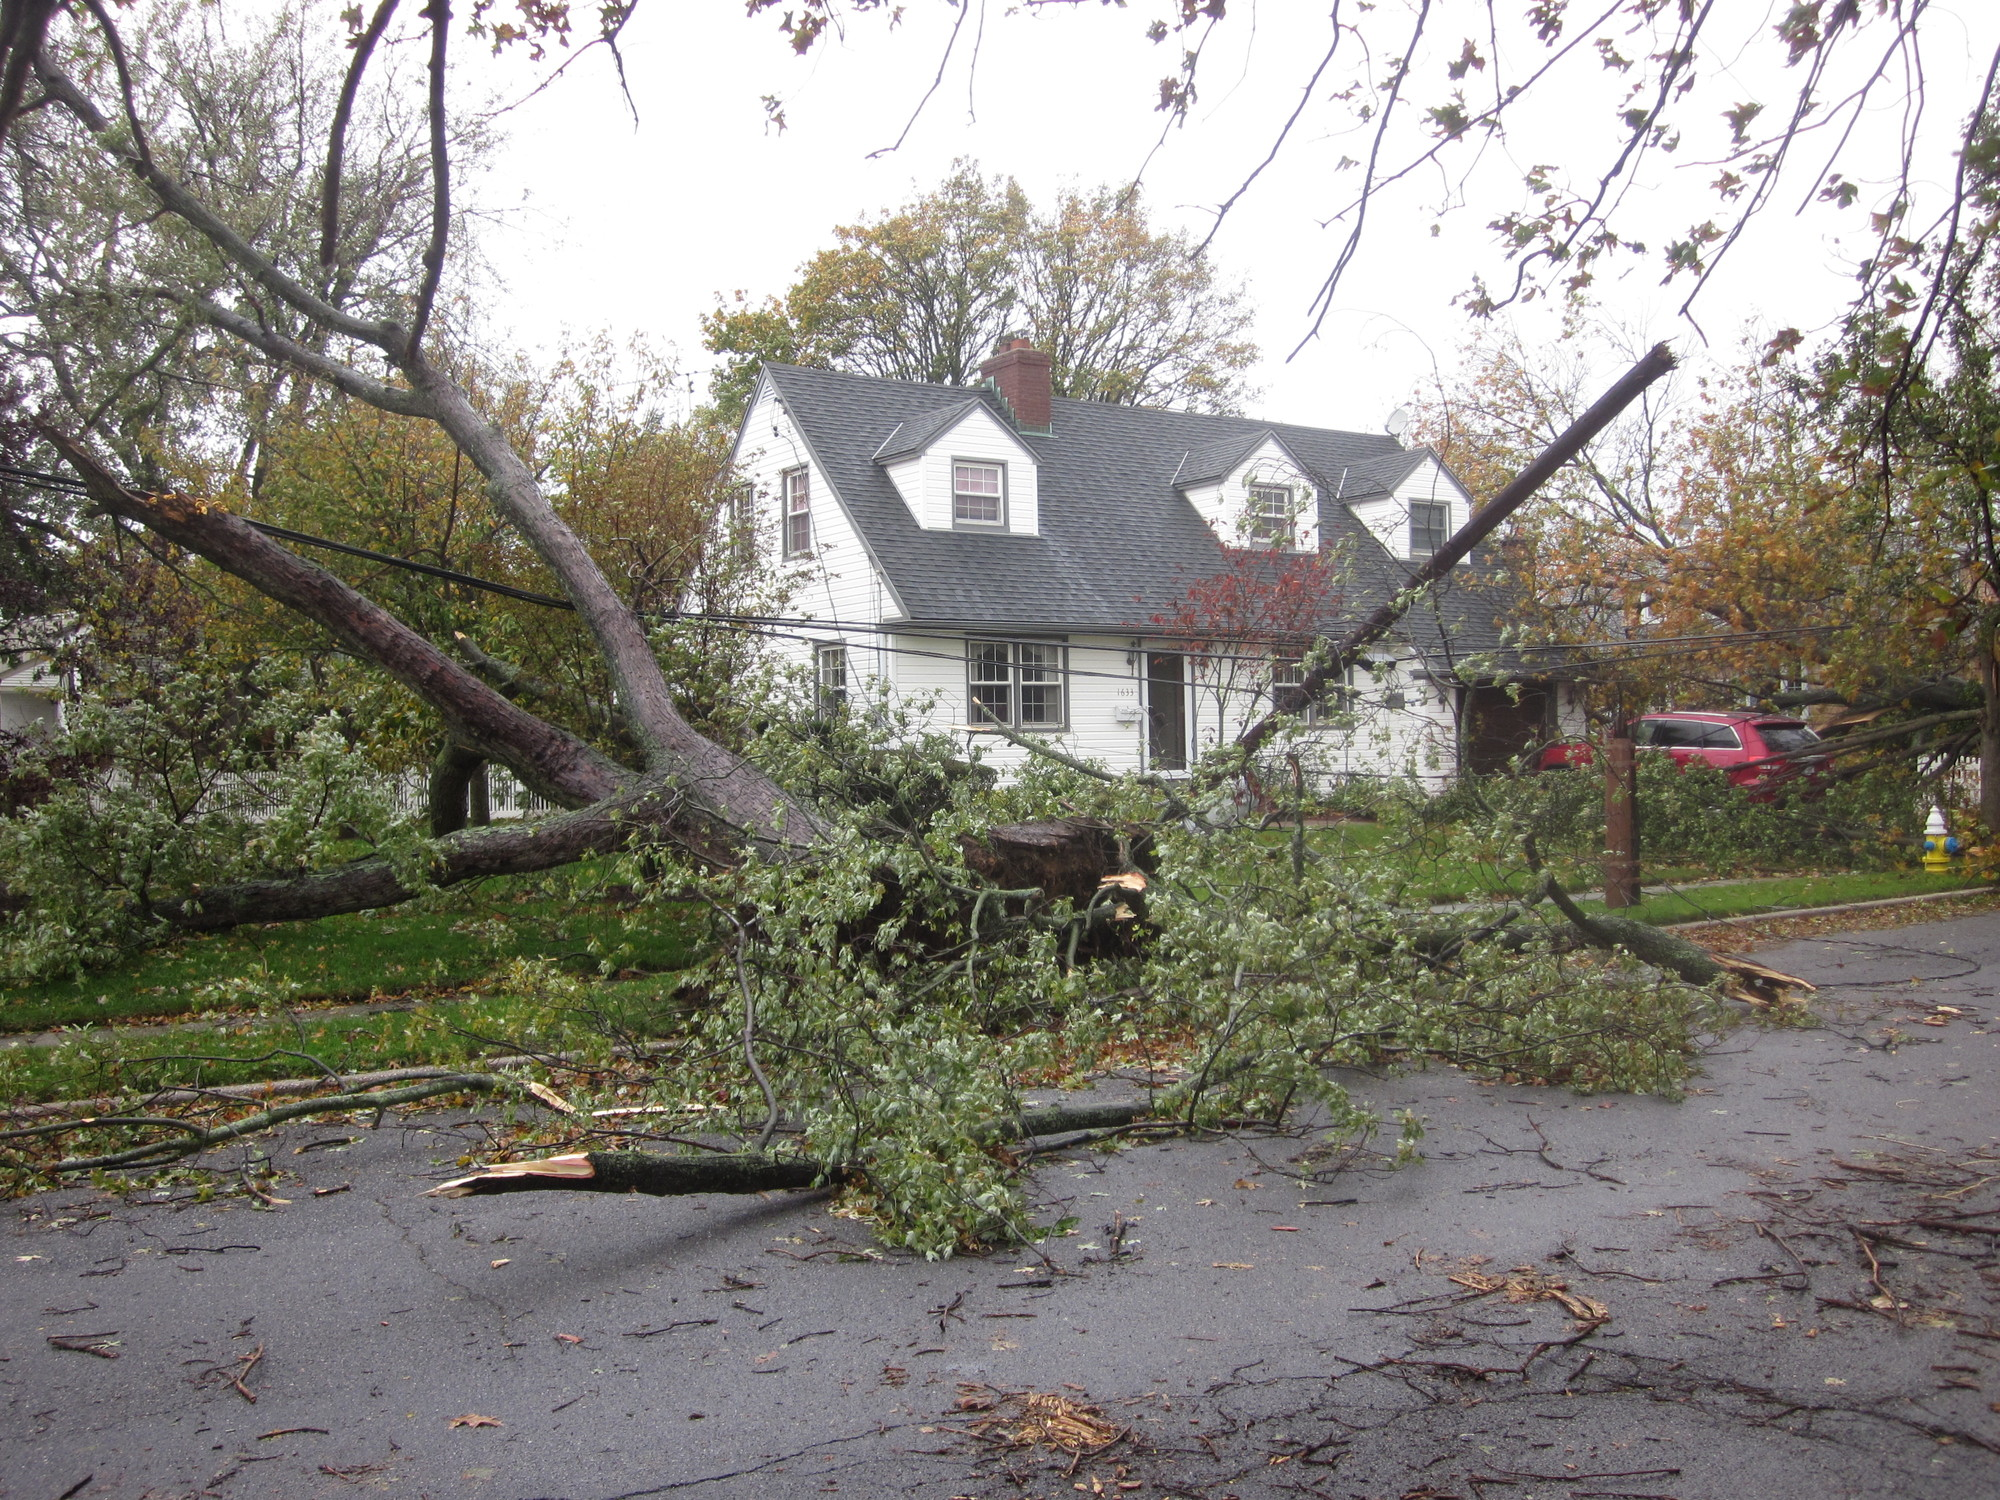 Fallen trees and downed power lines were a common sight in East Meadow last October.